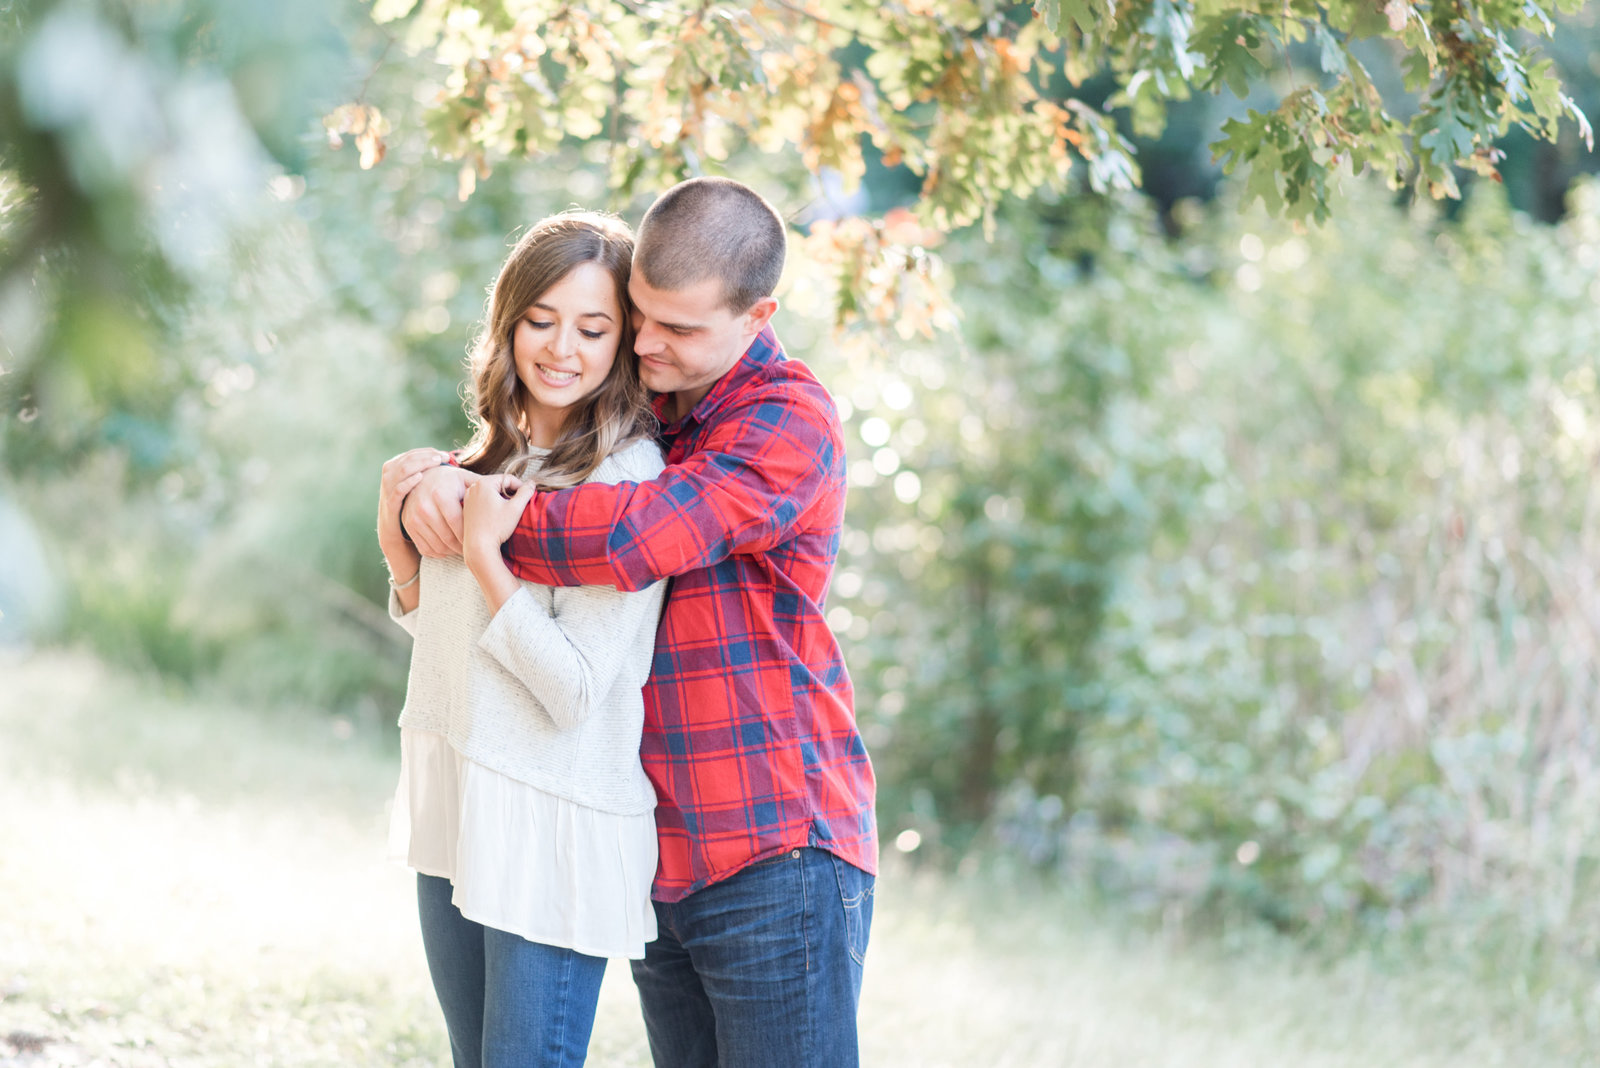 virginia-beach-bayville-park-fall-engagement-session-photo459